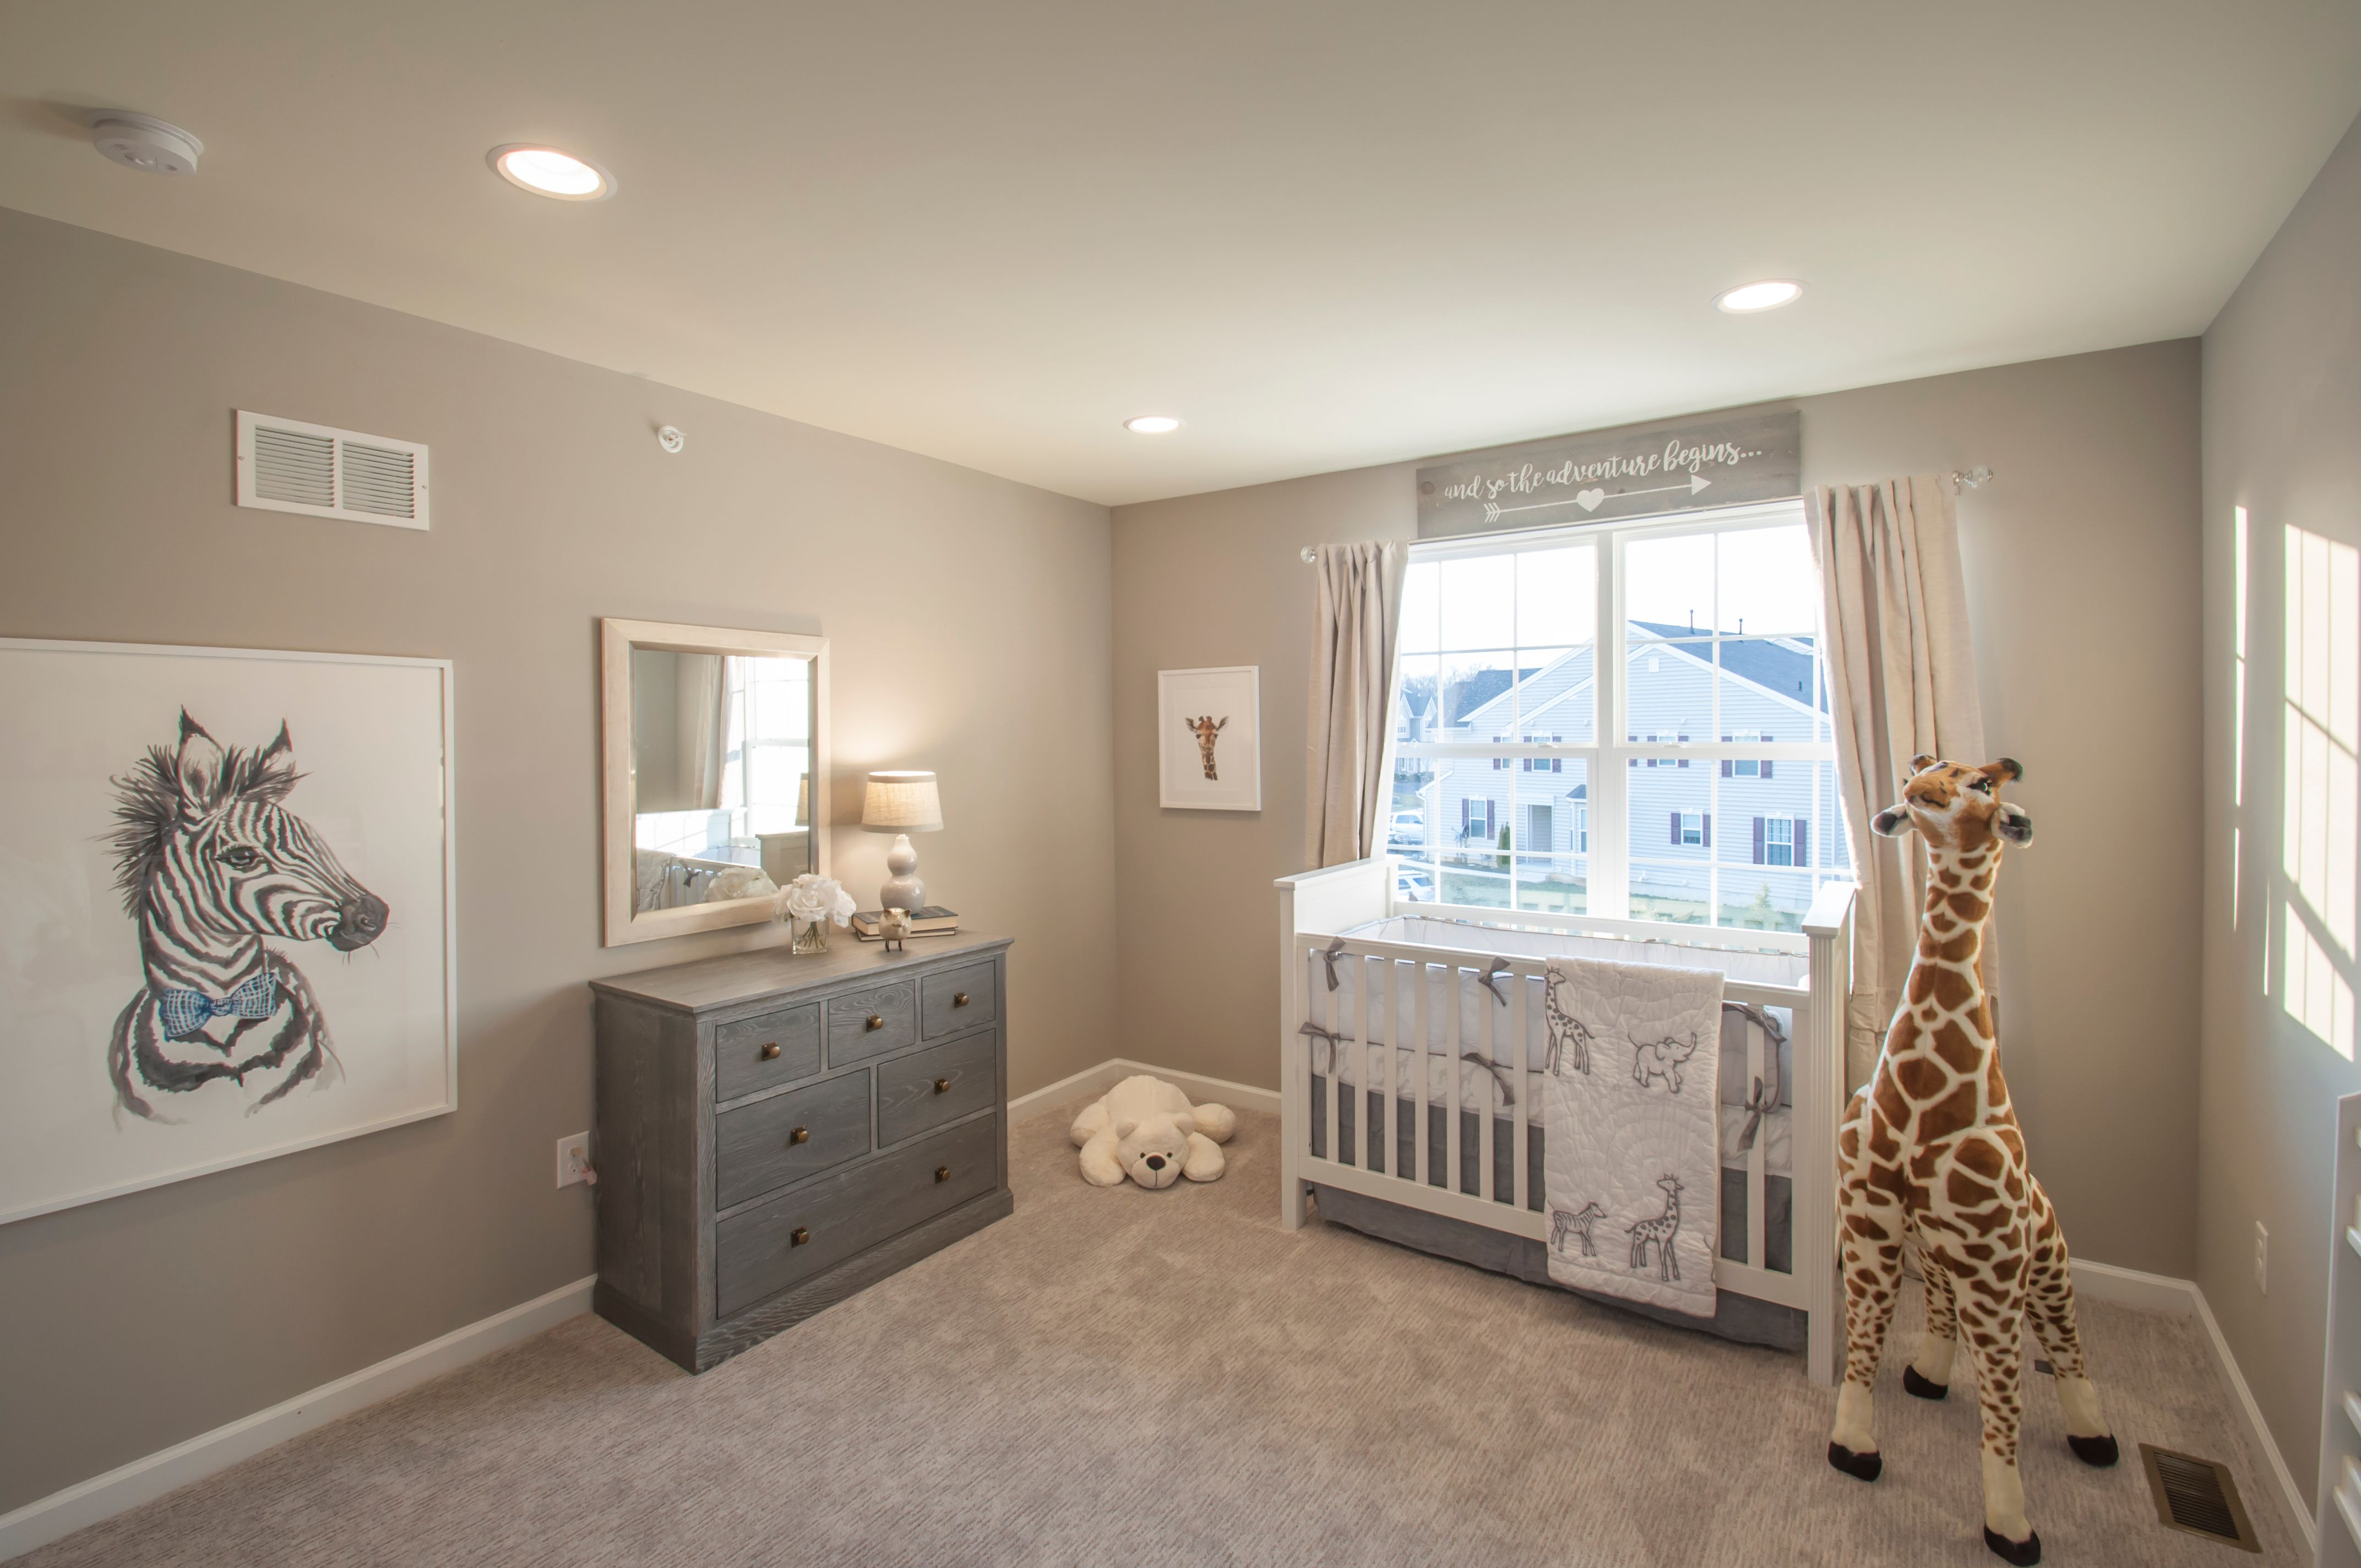 Bedroom featured in the Stargrass By Sal Lapio Homes in Allentown-Bethlehem, PA